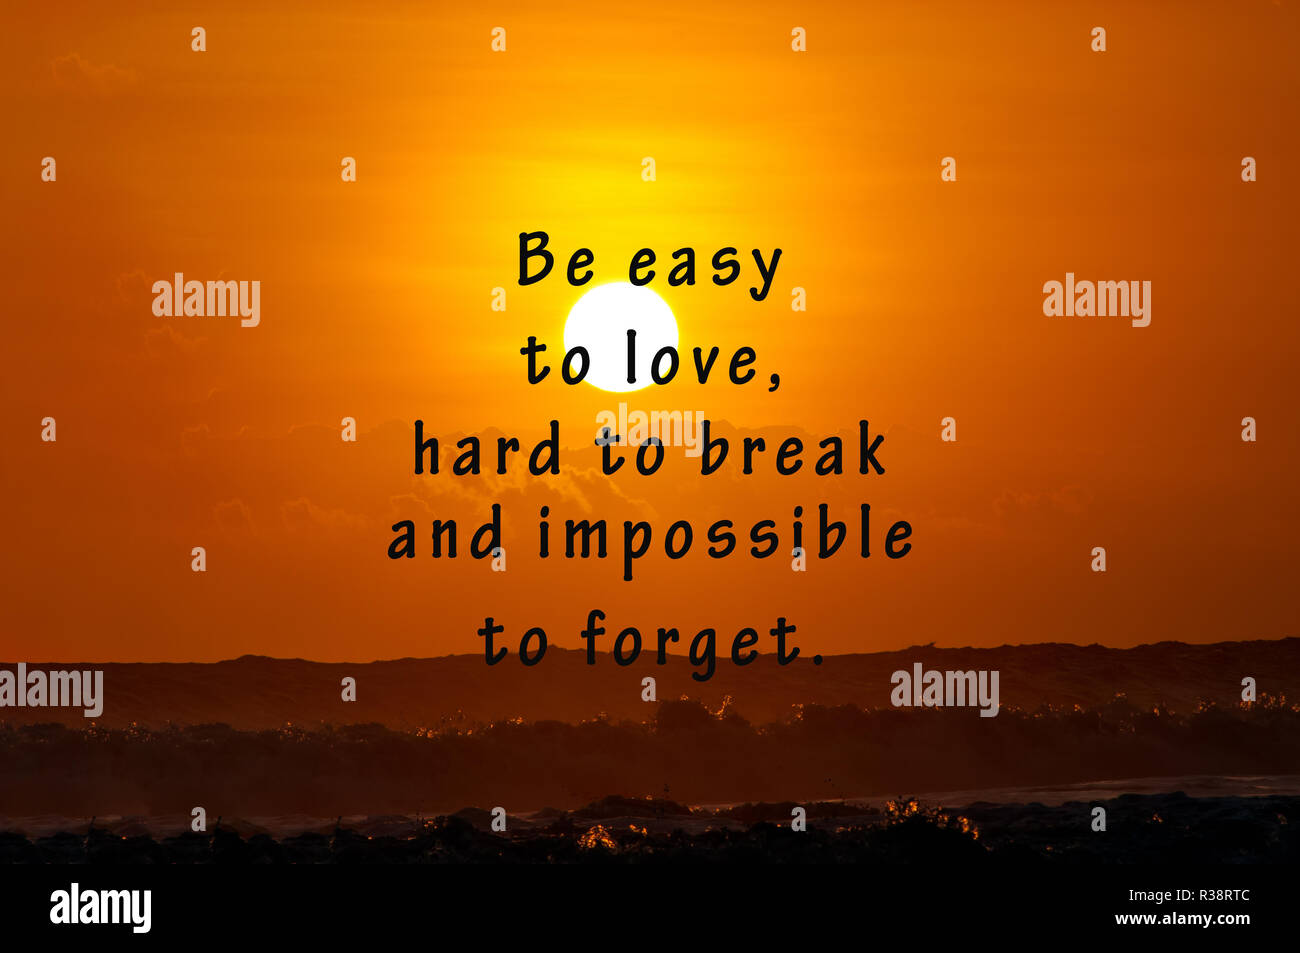 Inspirational Life Quotes Be Easy To Love Hard To Break And